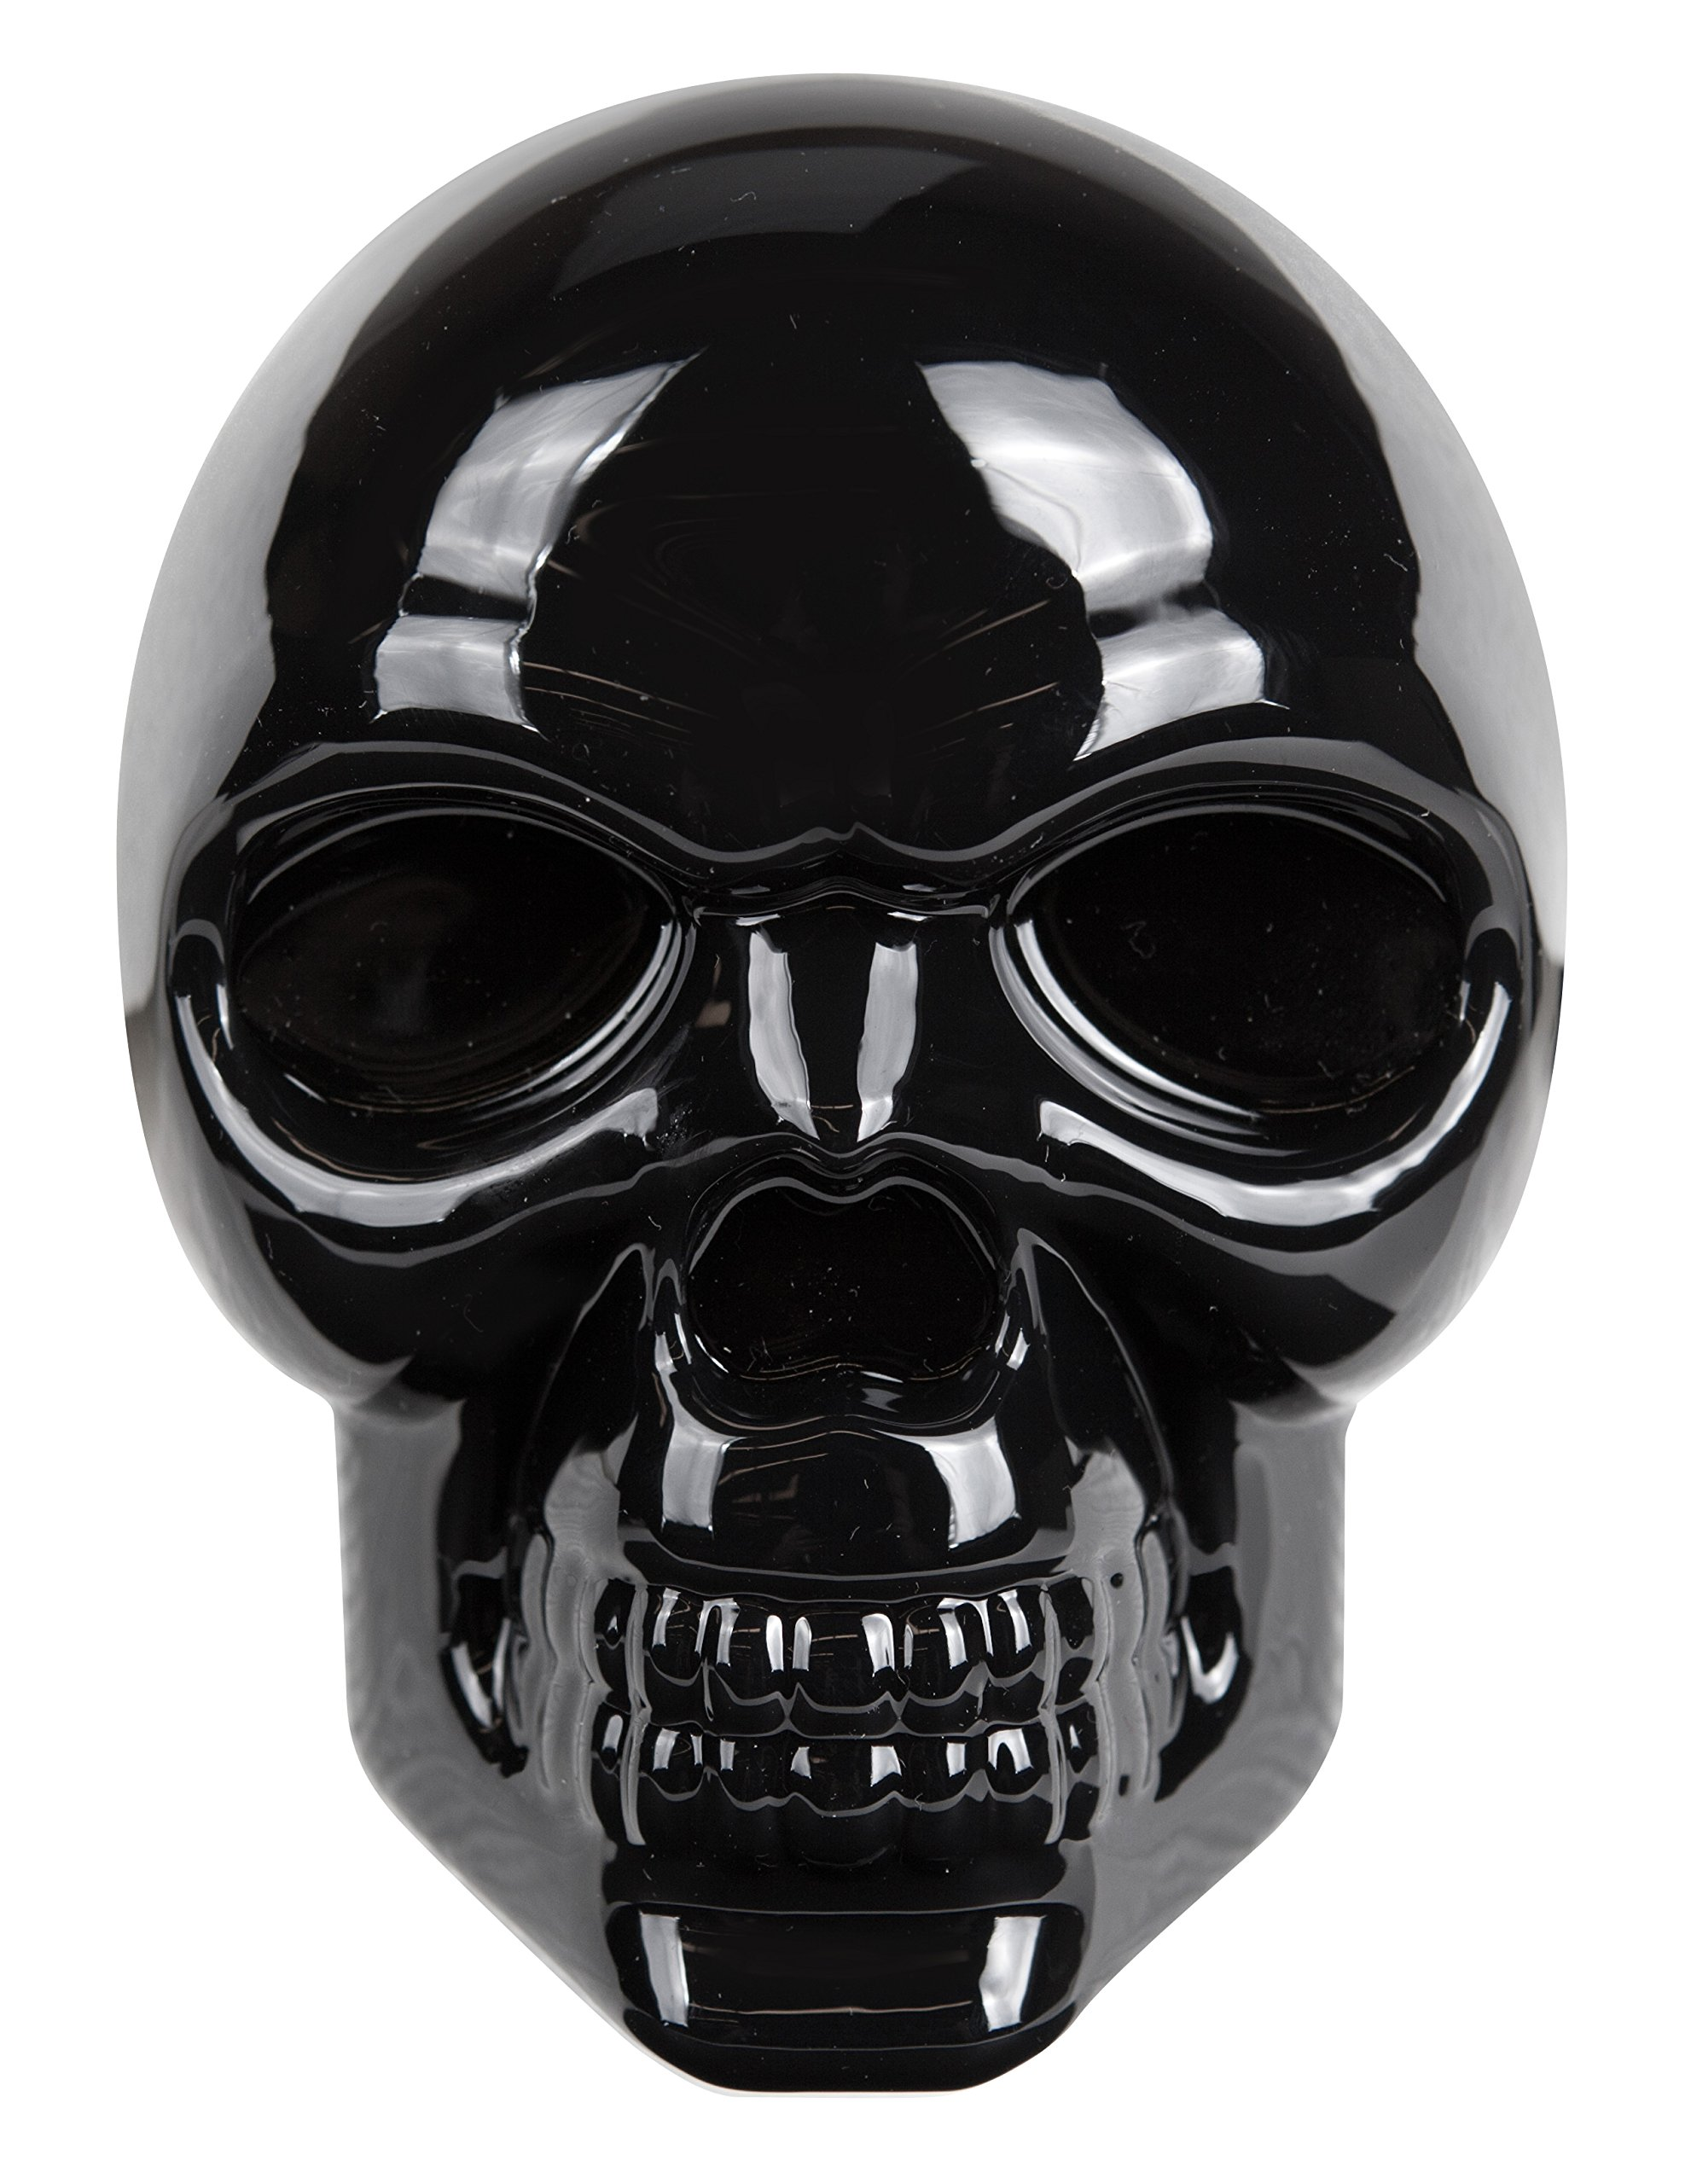 Reese Towpower 86529 Black Finish Skull Lighted Hitch Cover